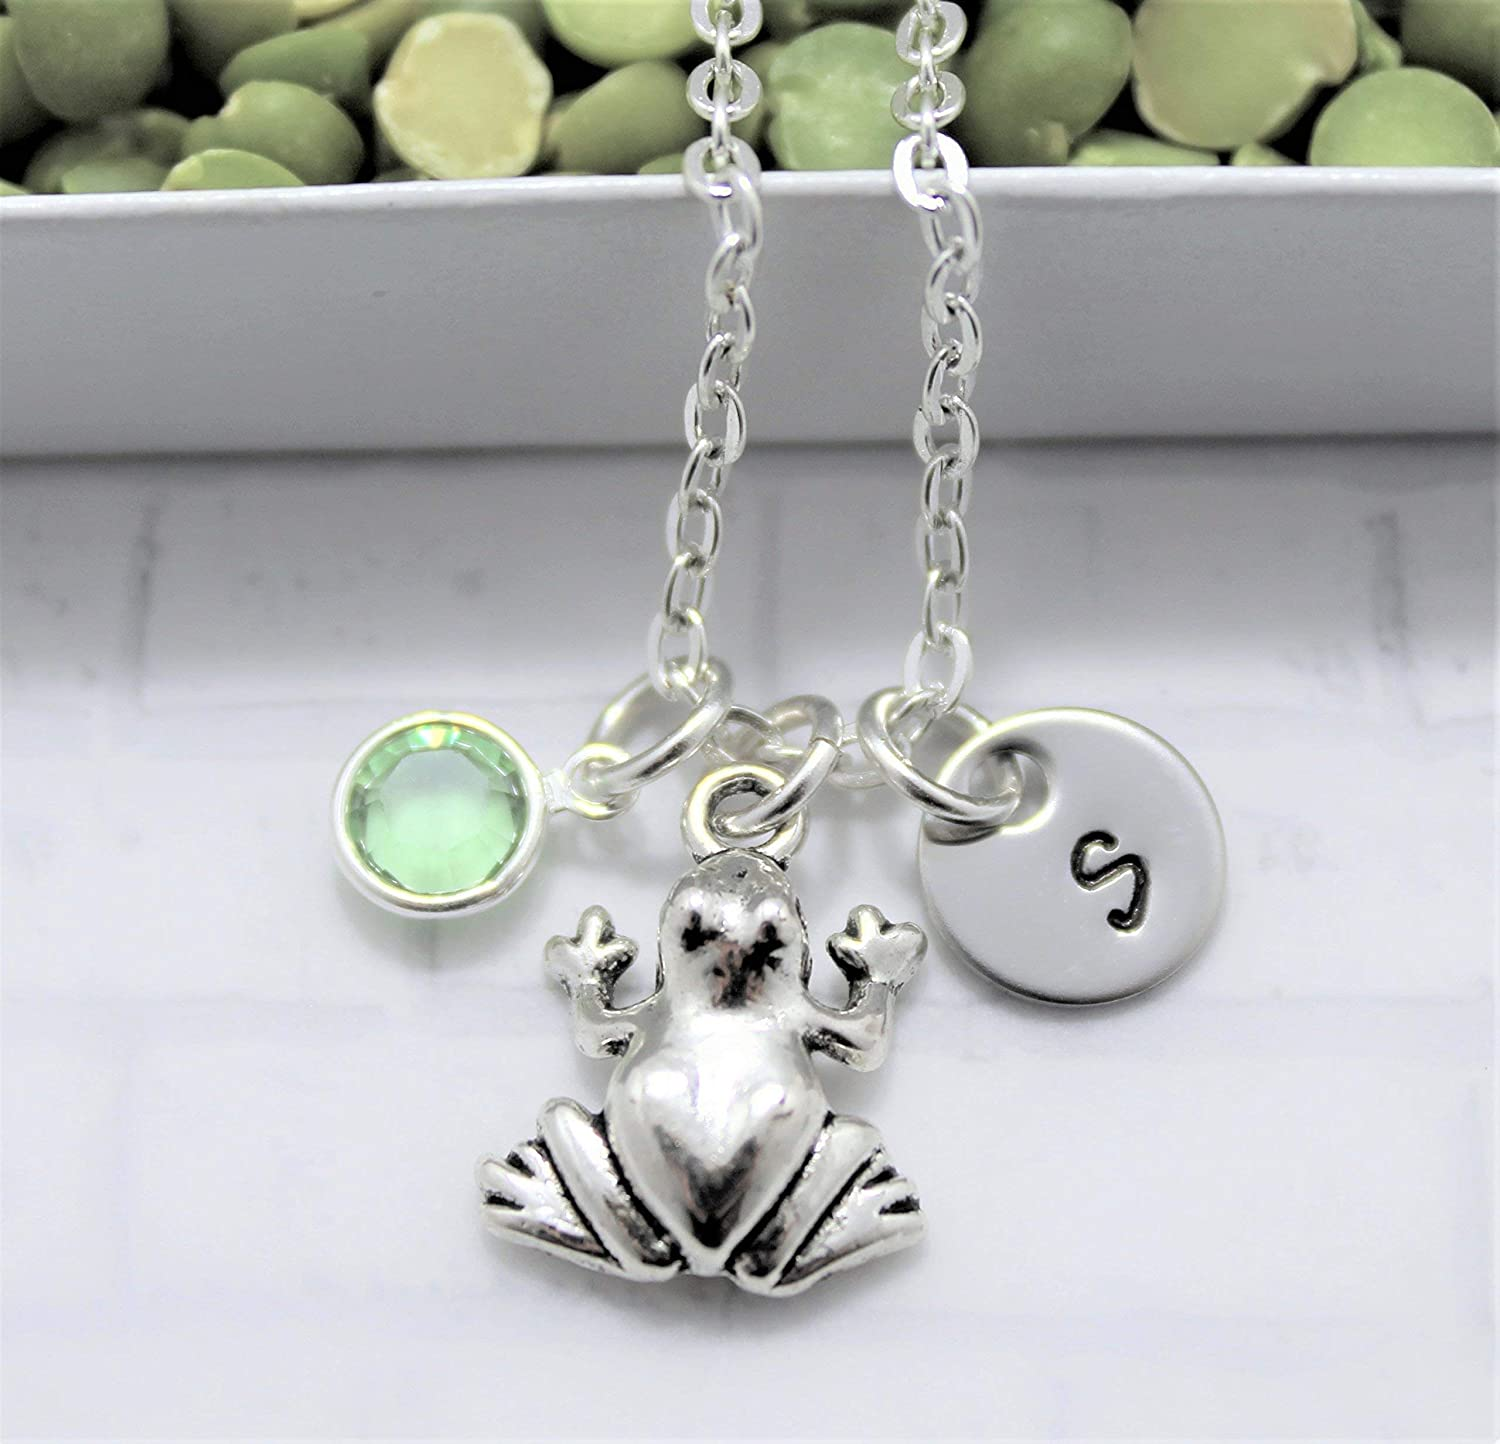 Frog Mom Necklace  Frog Mom Pendant  Laser Cut Wood  Amphibian Jewelry  Anthropomorphic Frog  Frog Mom Gift